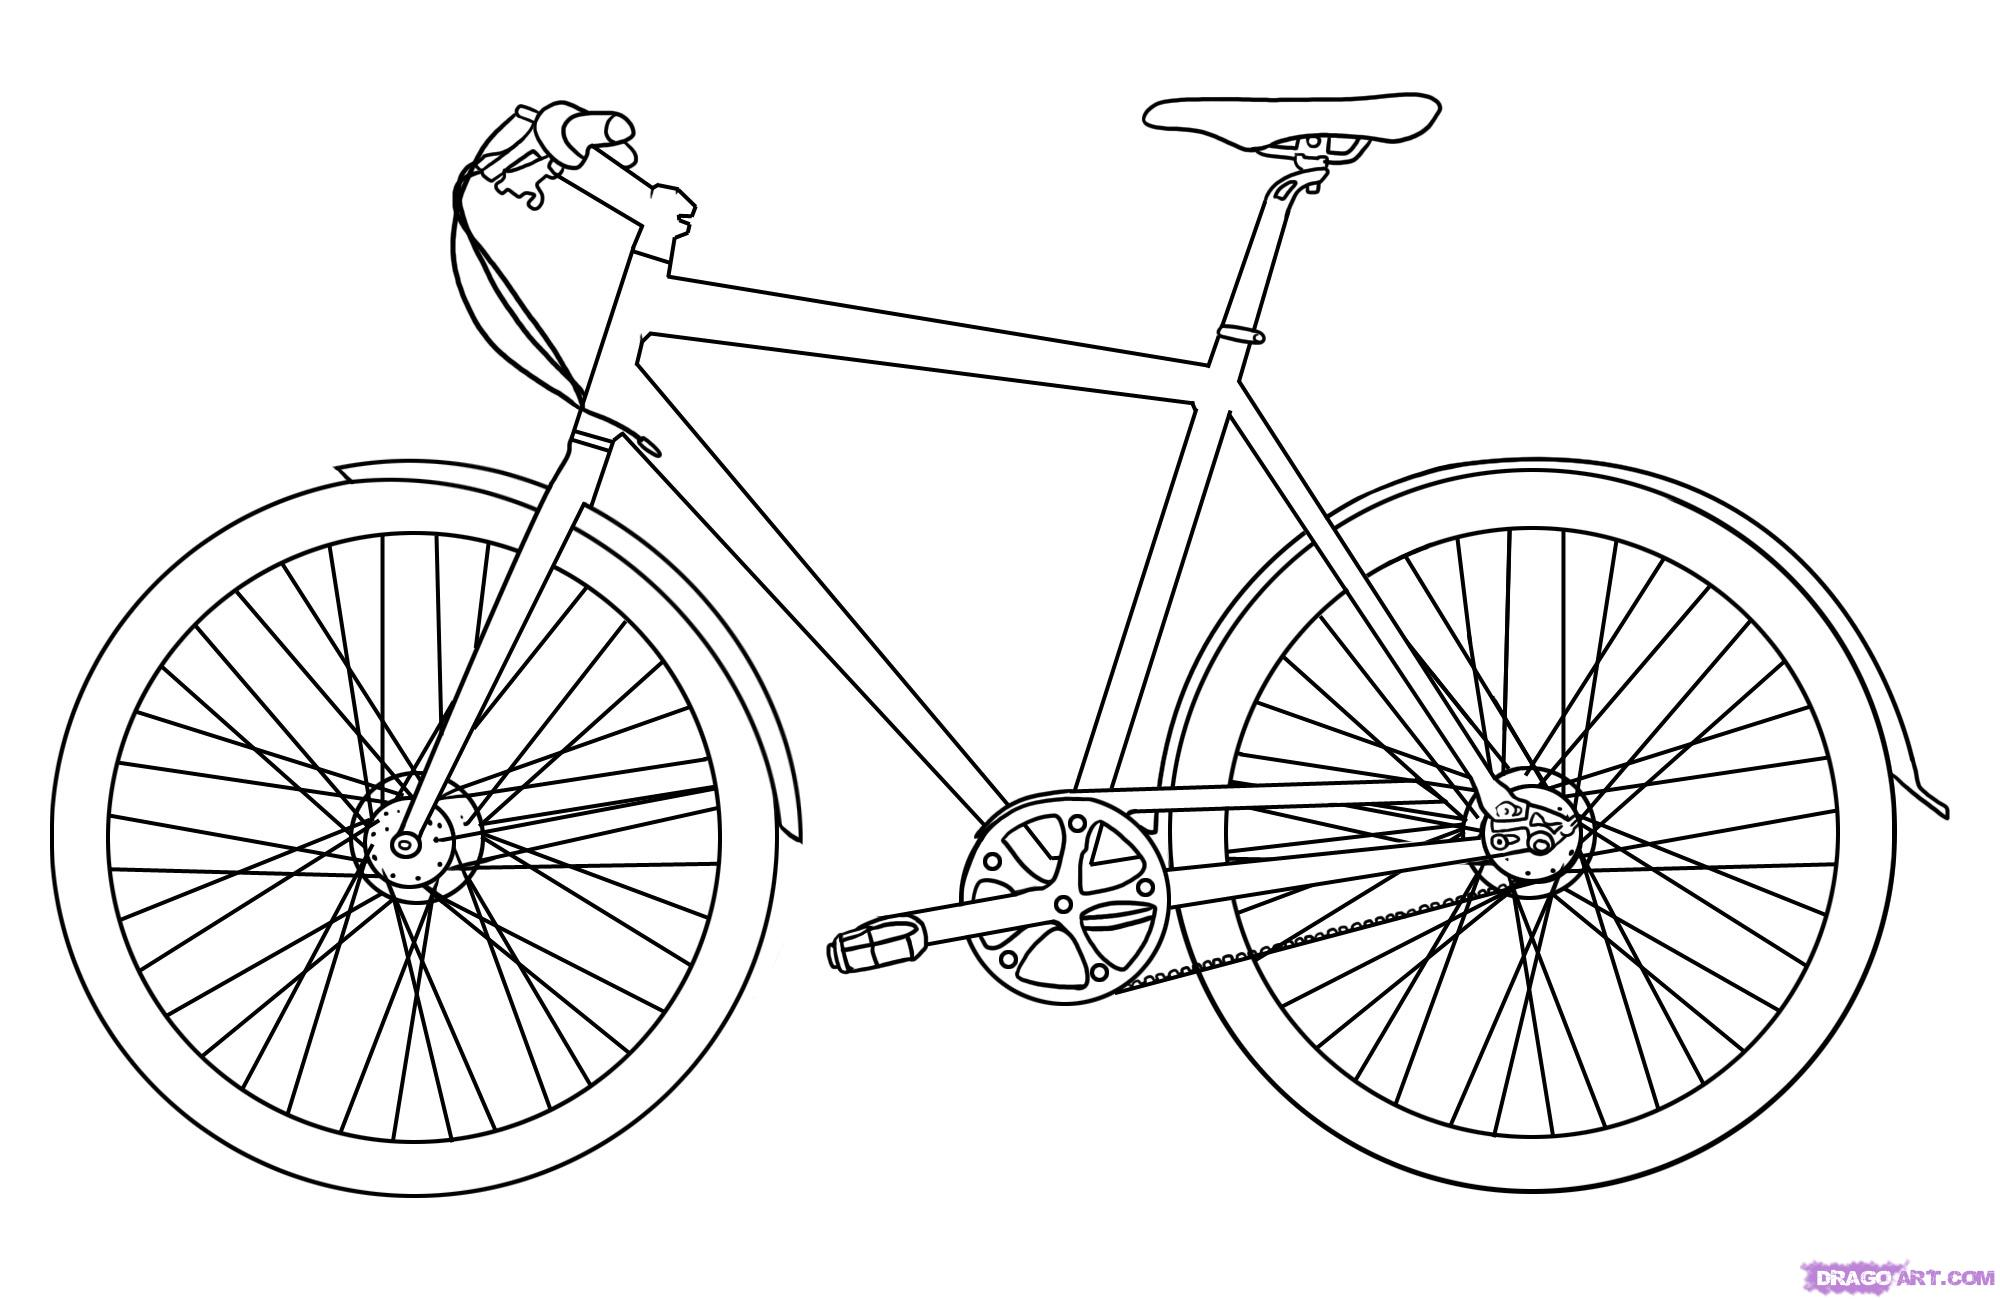 Drawn bicycle To Stuff Draw Step How